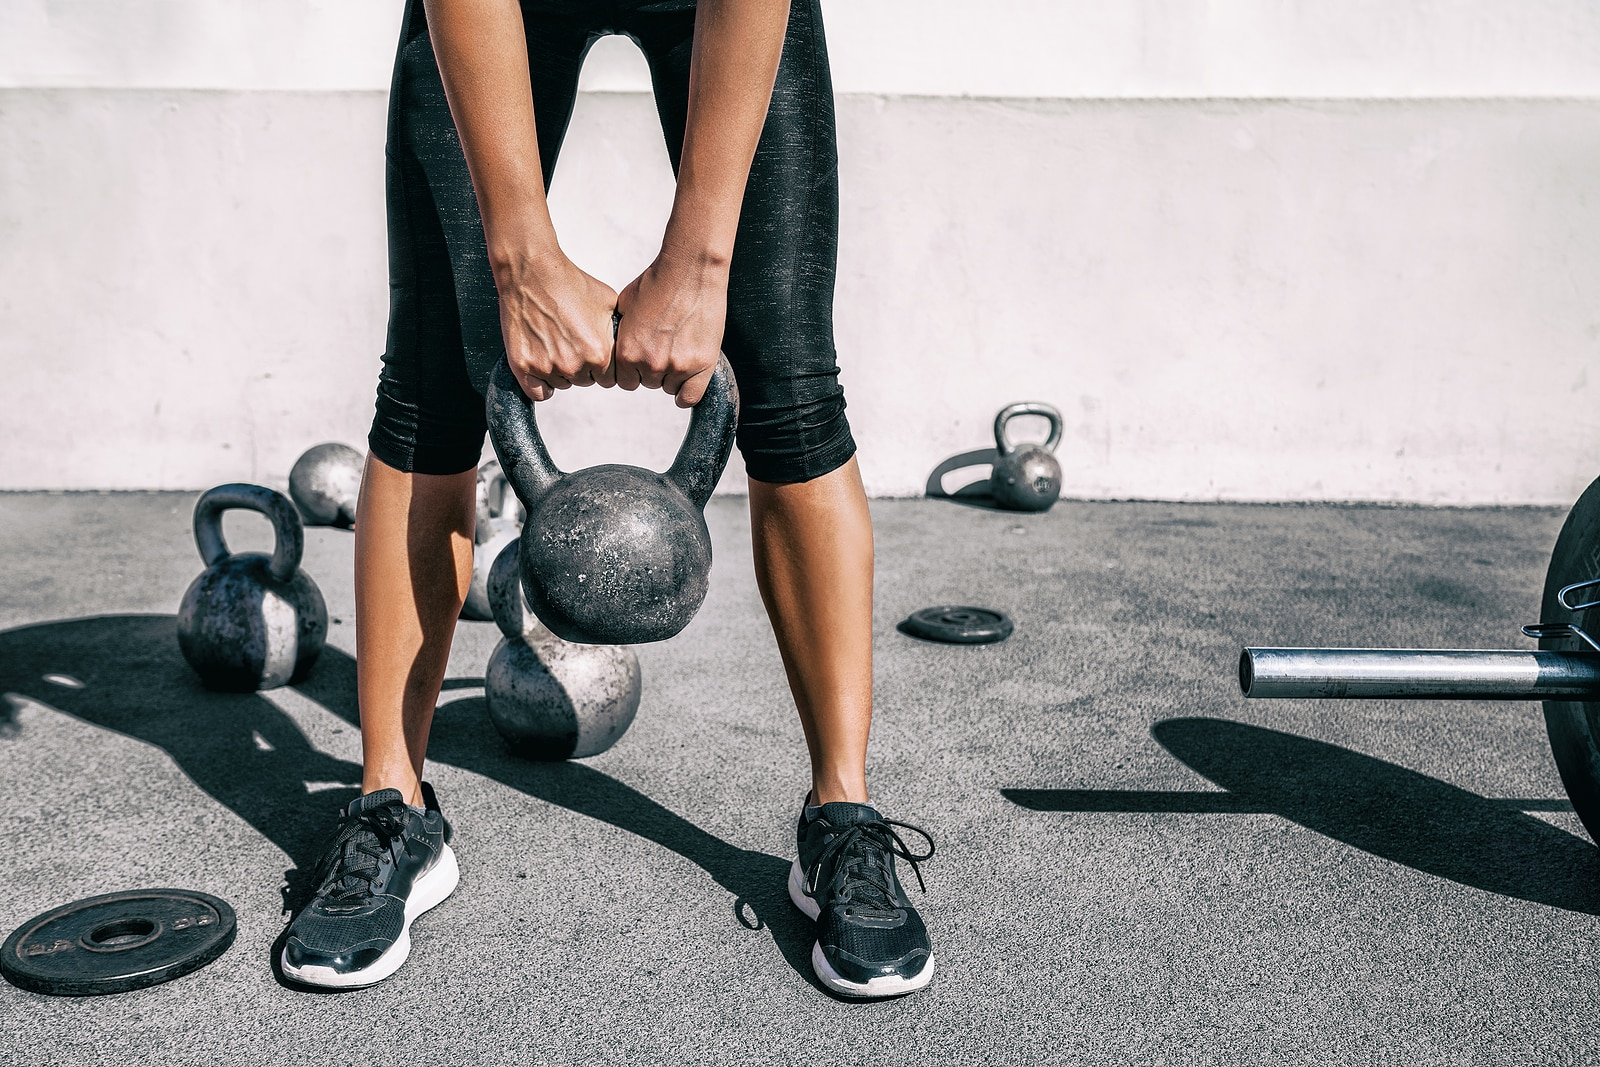 Stress of over exercise can affect gut health- woman doing intense workout